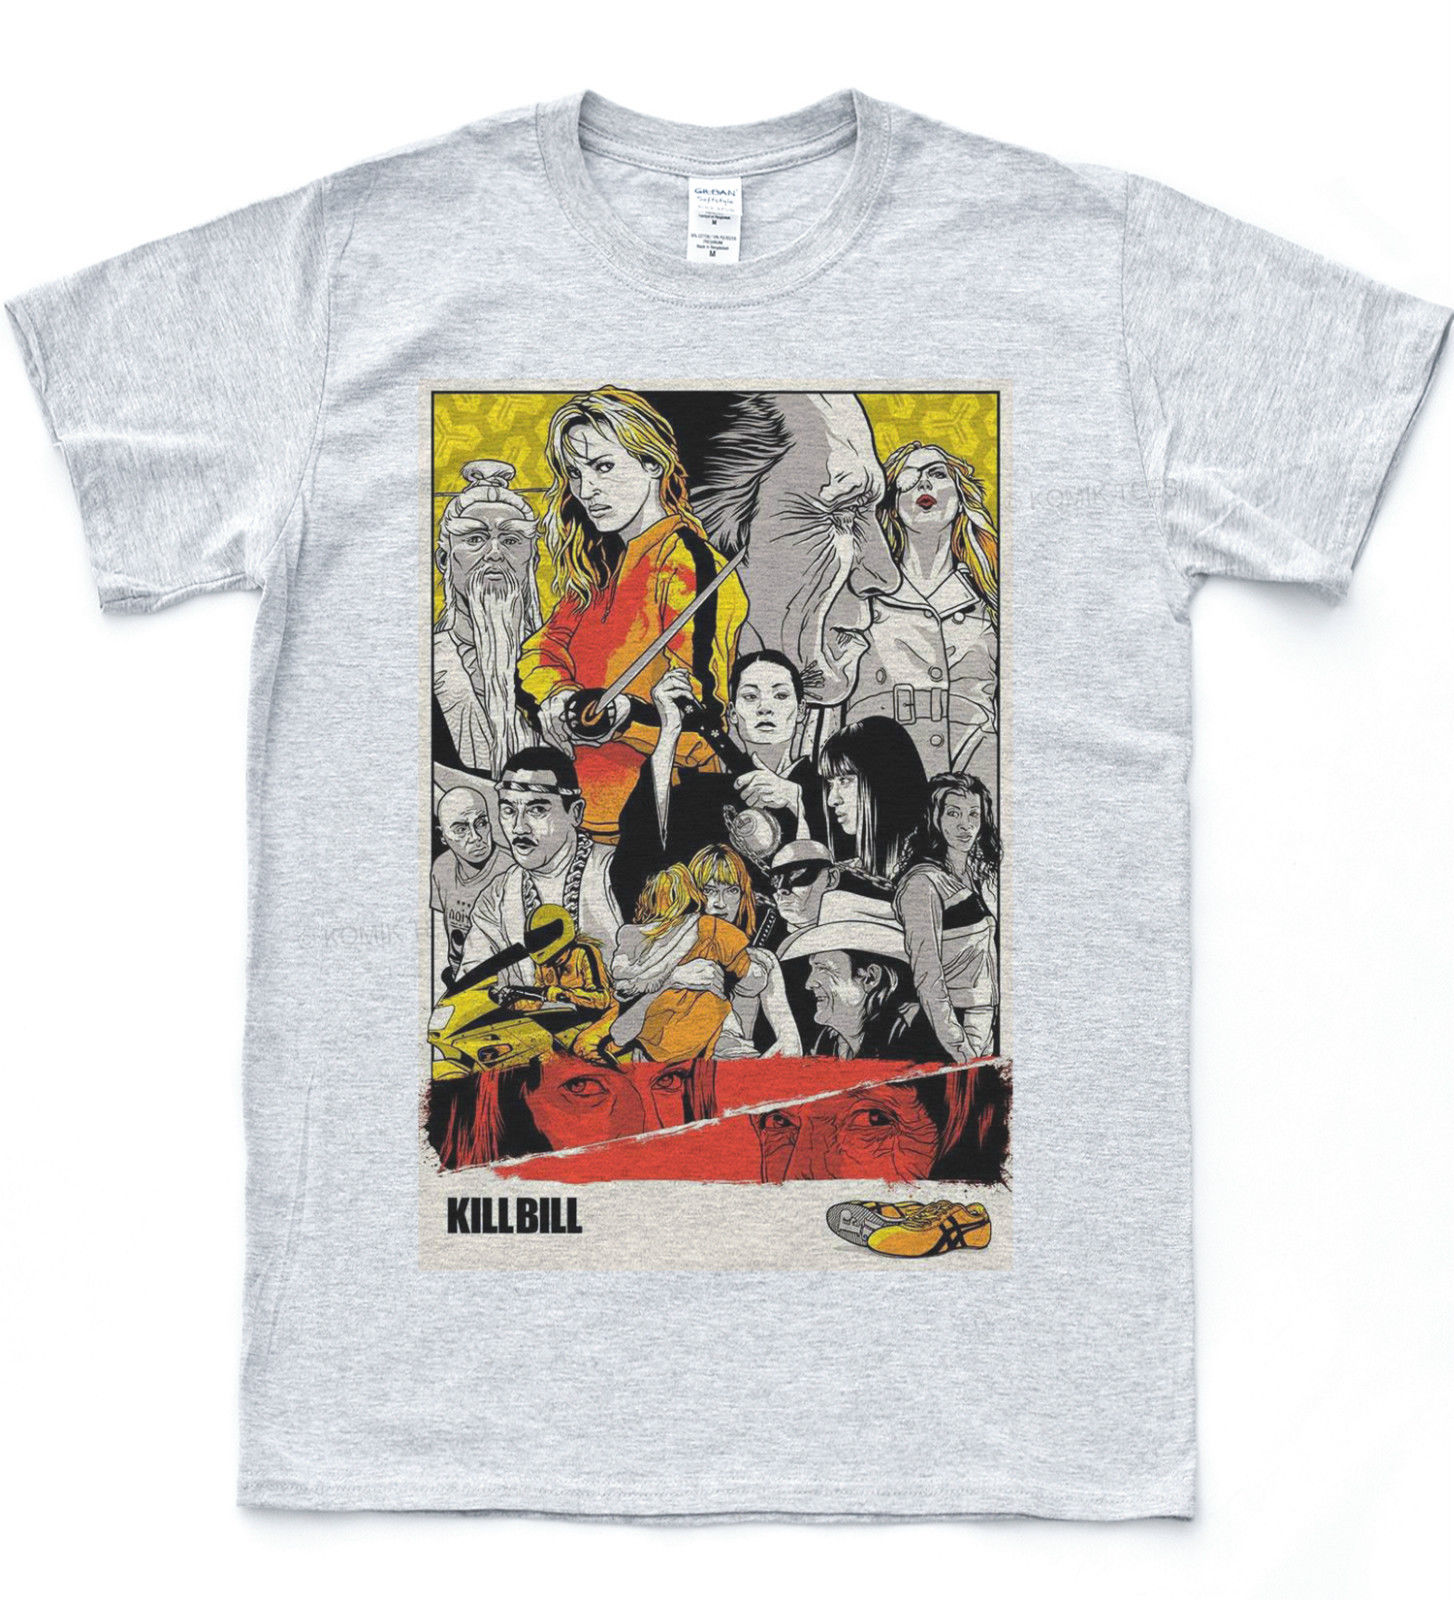 kill-bill-poster-t-shirt-font-b-tarantino-b-font-film-cult-tee-sketch-movie-vintage-tumblr-top-men-2018-summer-round-neck-men's-t-shirt